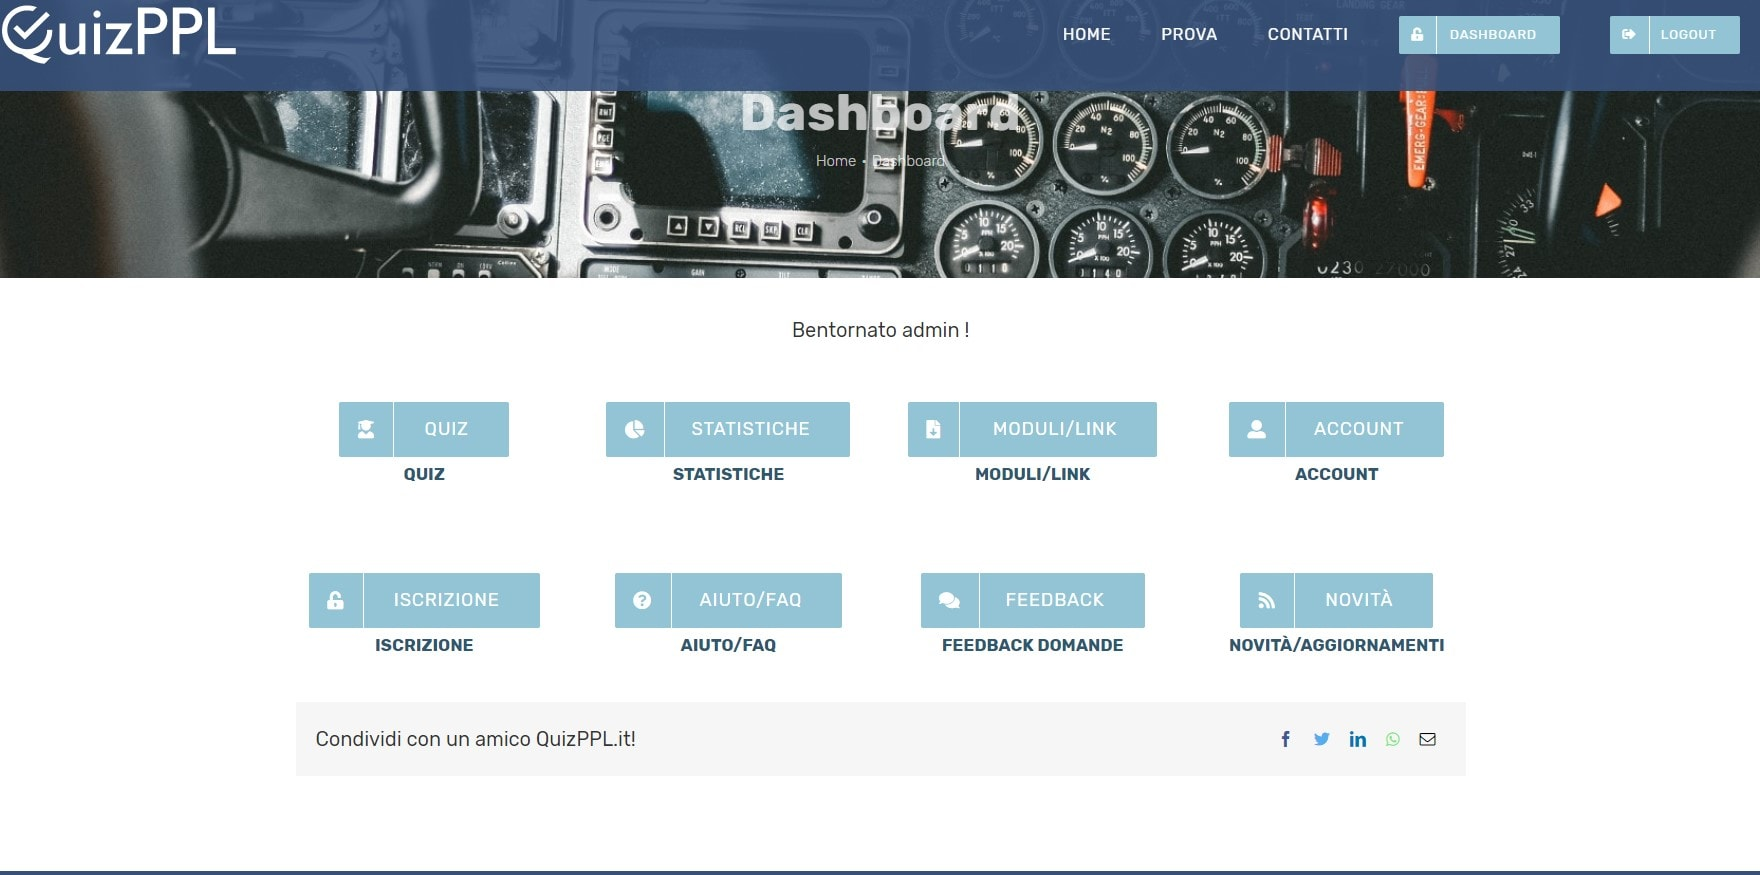 Dashboard di Quizppl.it